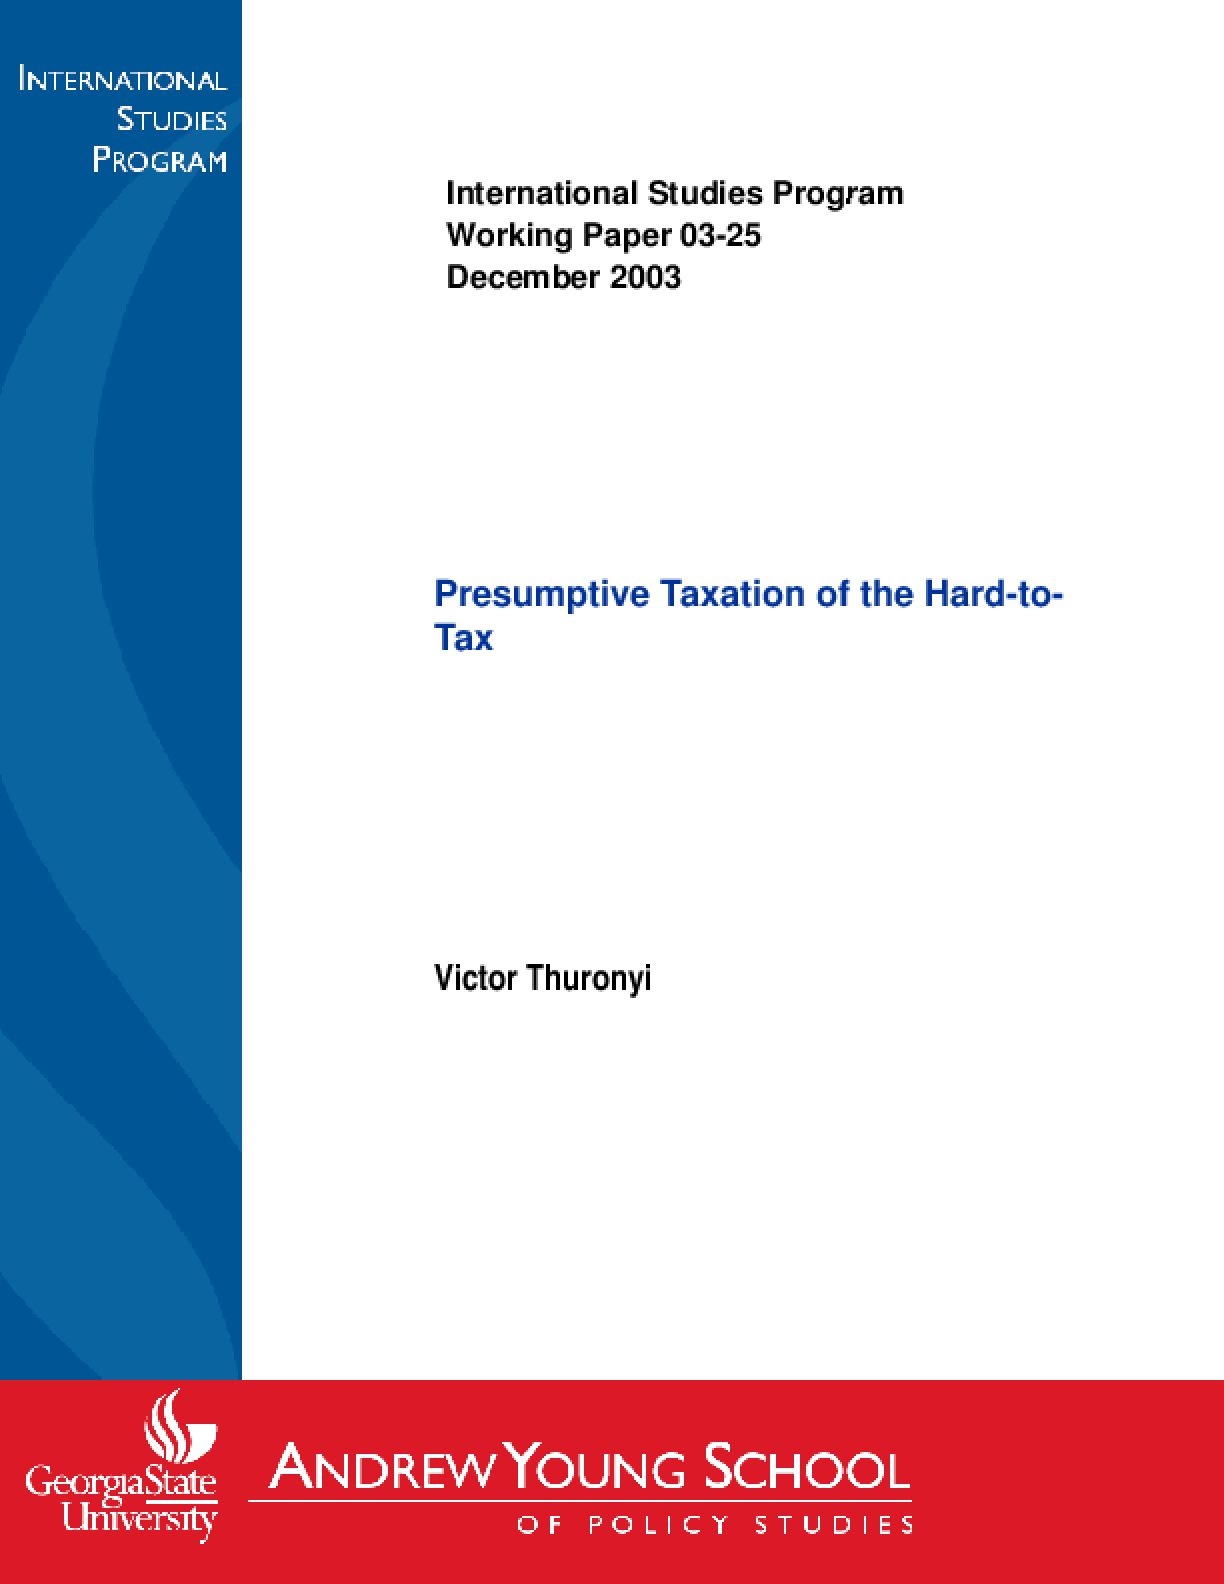 Presumptive Taxation of the Hard-to-Tax